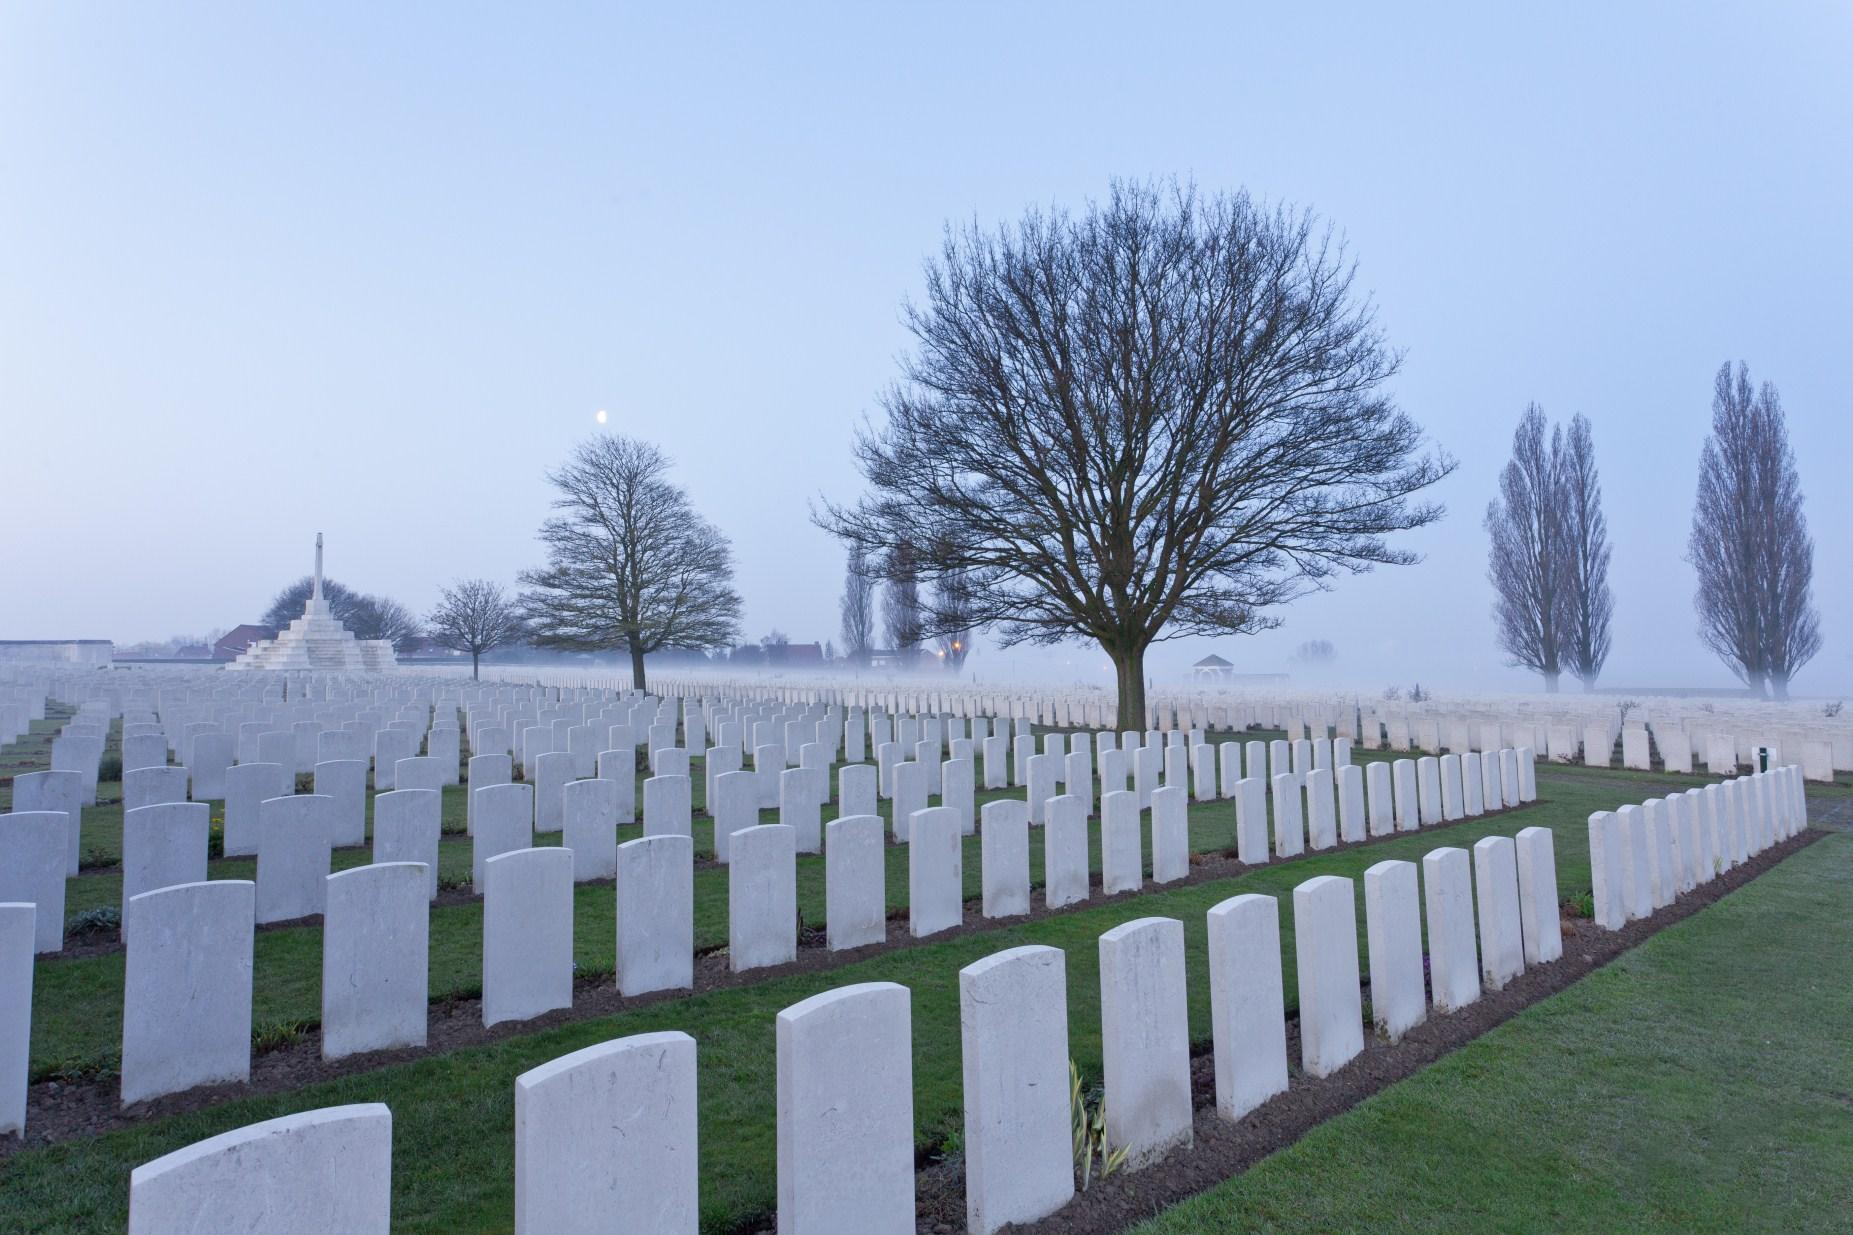 Silent city meets Living city - Tyne Cot Cemetery